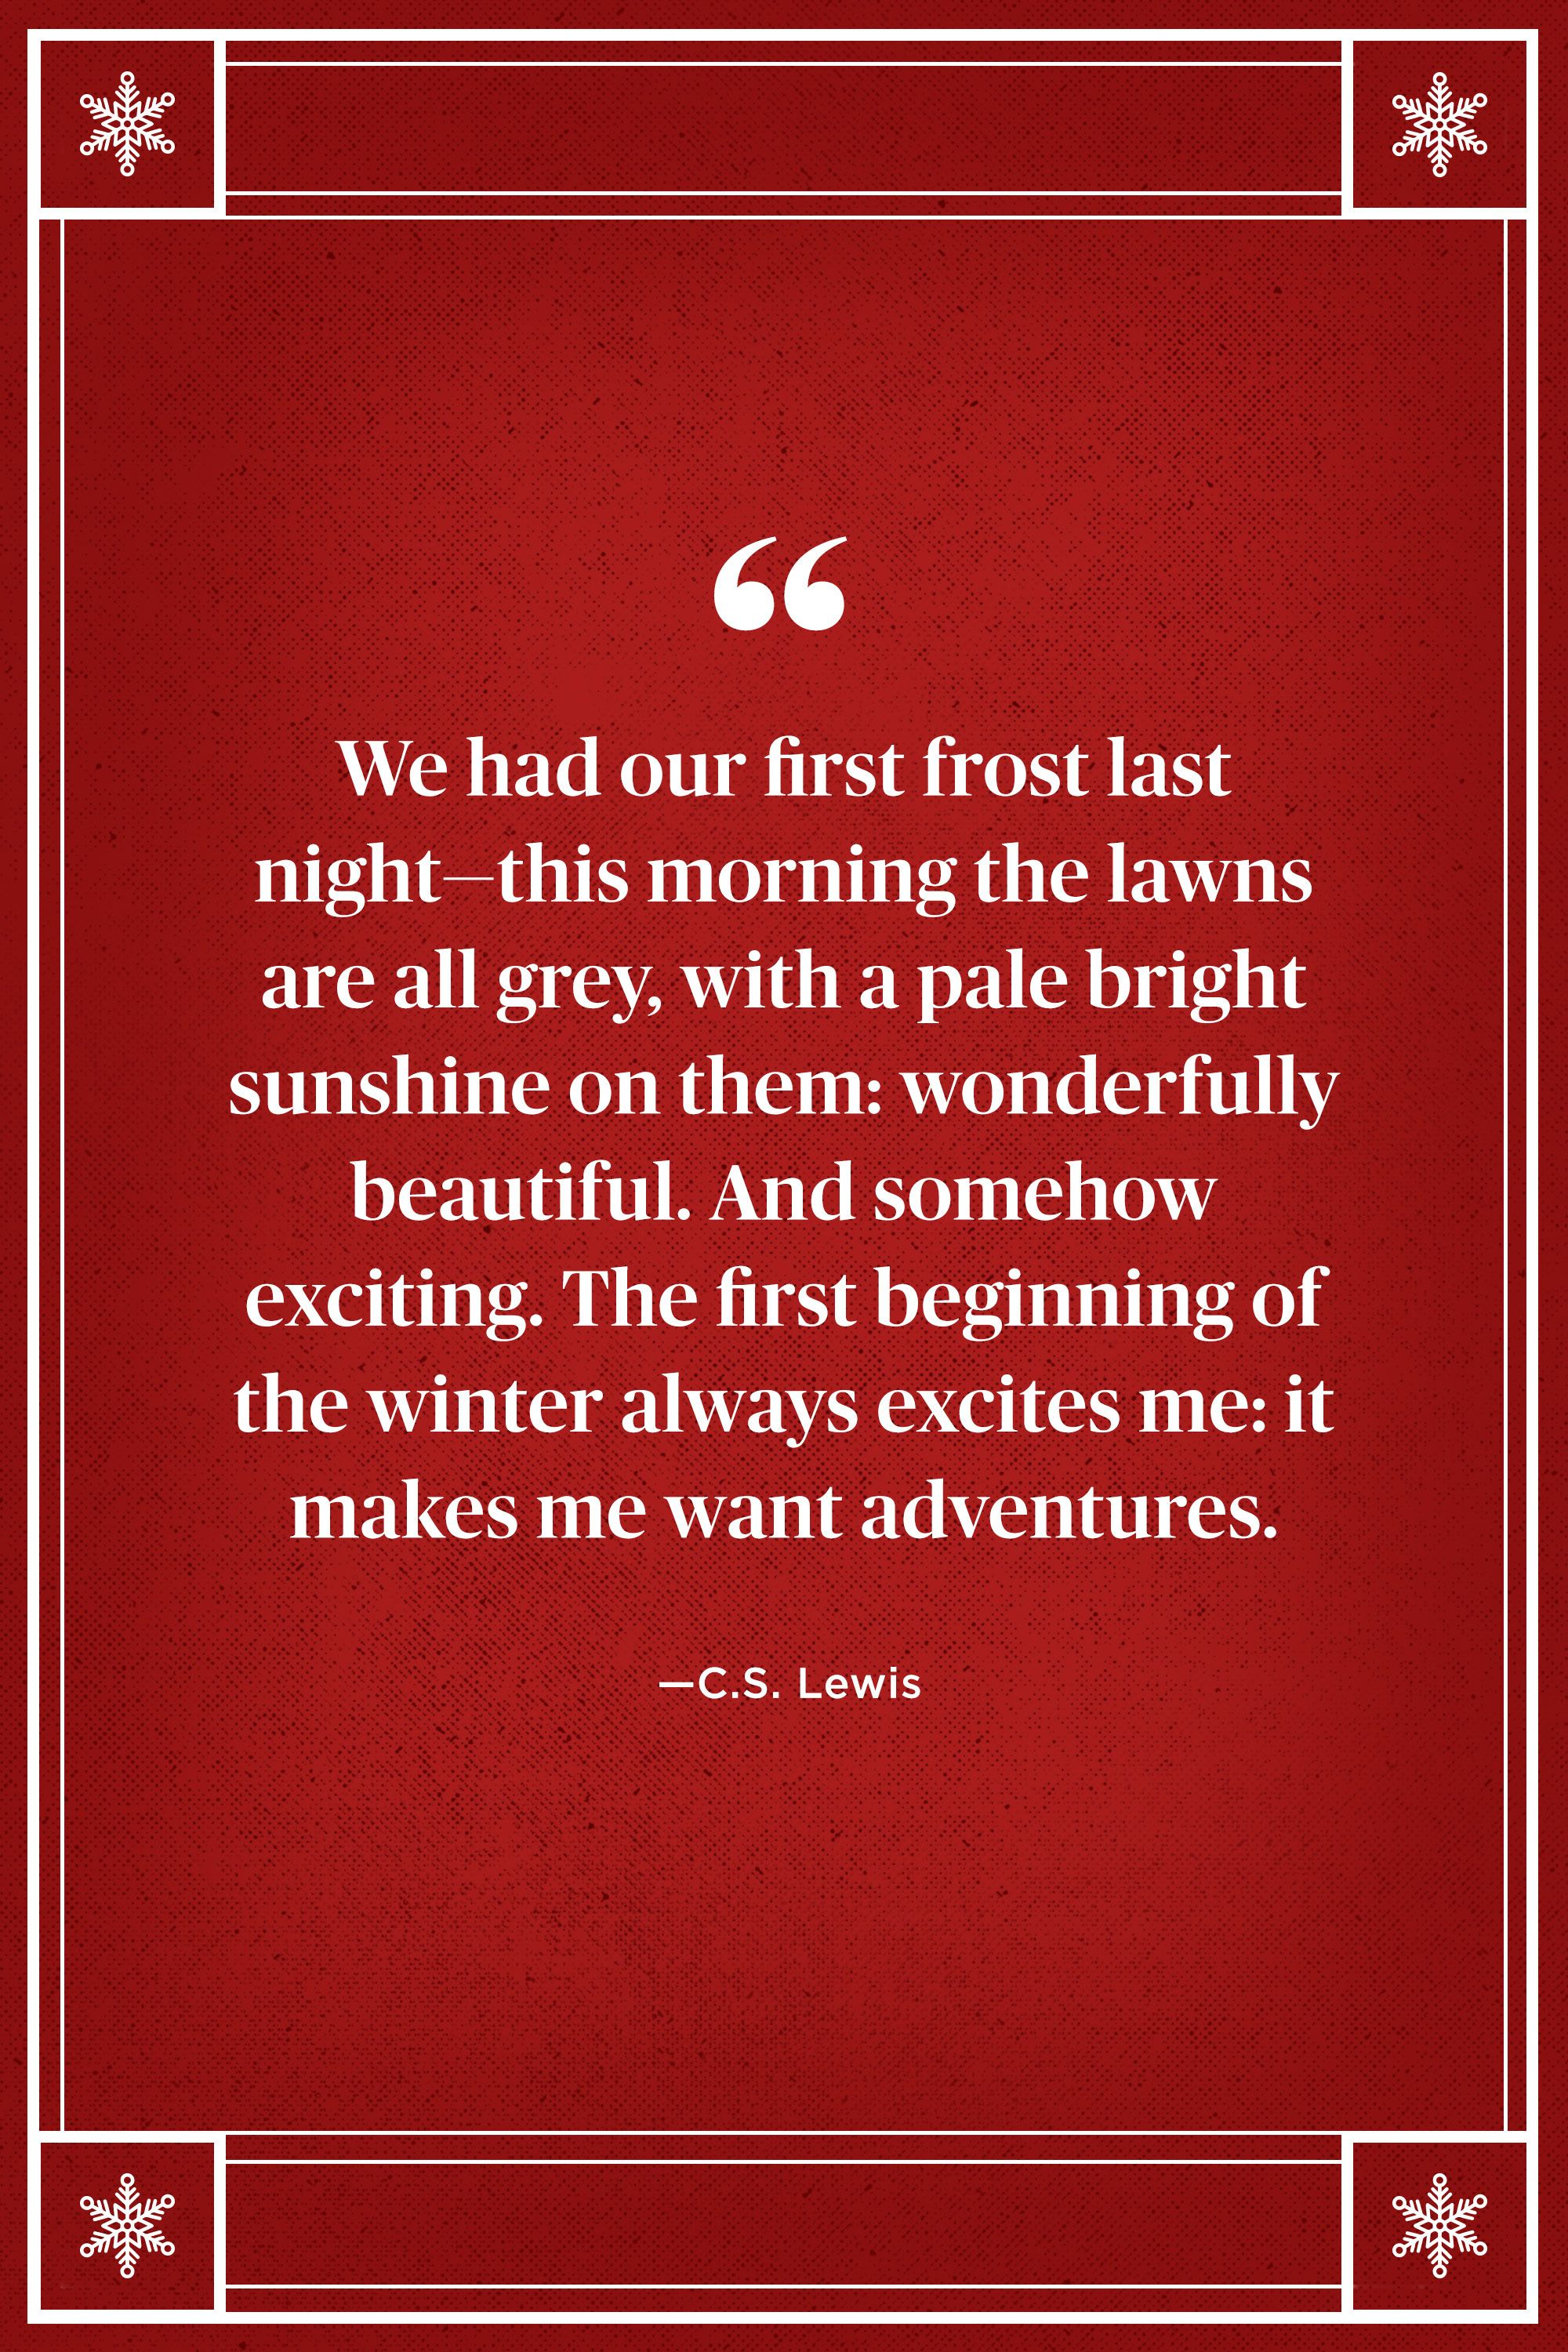 "<p>""We had our first frost last night — this morning the lawns are all grey, with a pale bright sunshine on them: wonderfully beautiful. And somehow exciting. The first beginning of the winter always excites me: it makes me want adventures."" </p>"